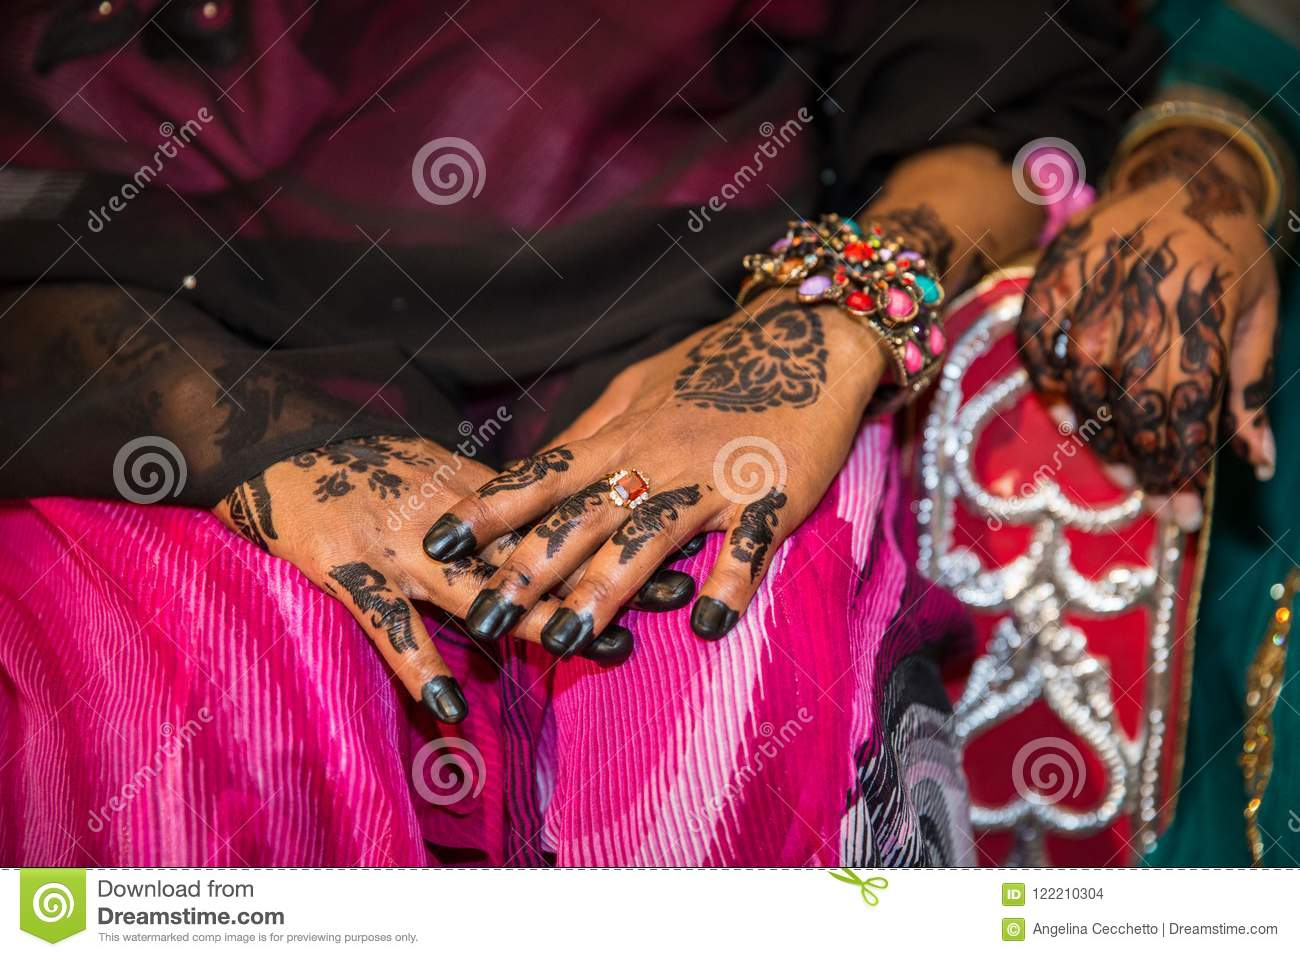 Black Henna Hands Drawings On Women For African Wedding Ceremony